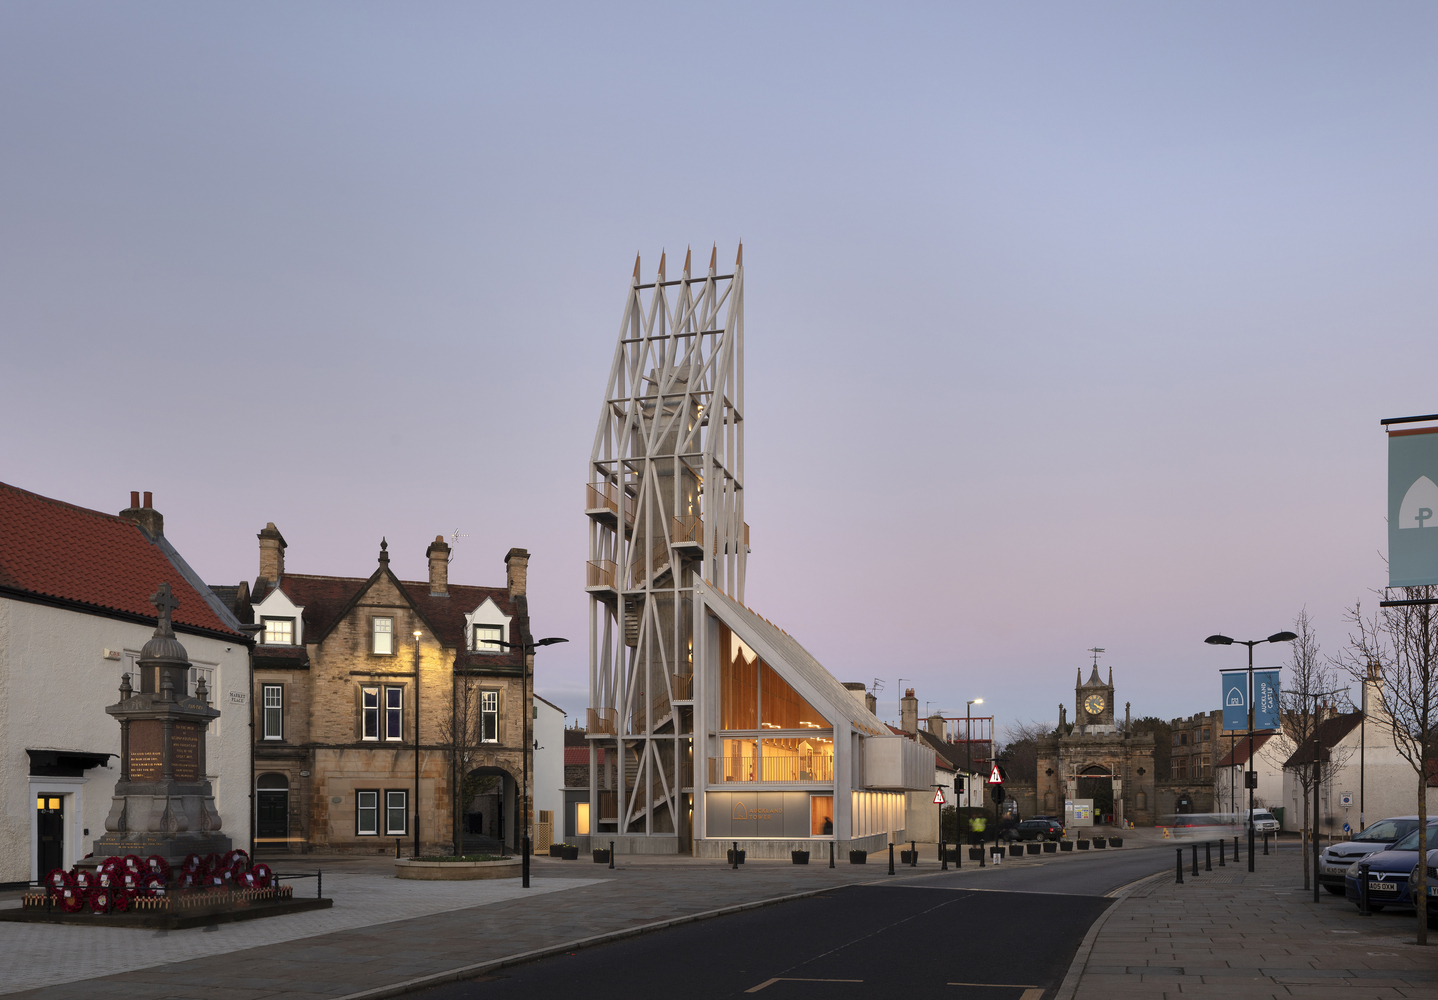 The Auckland Tower echoes lightweight provisional structures once clustering around castles